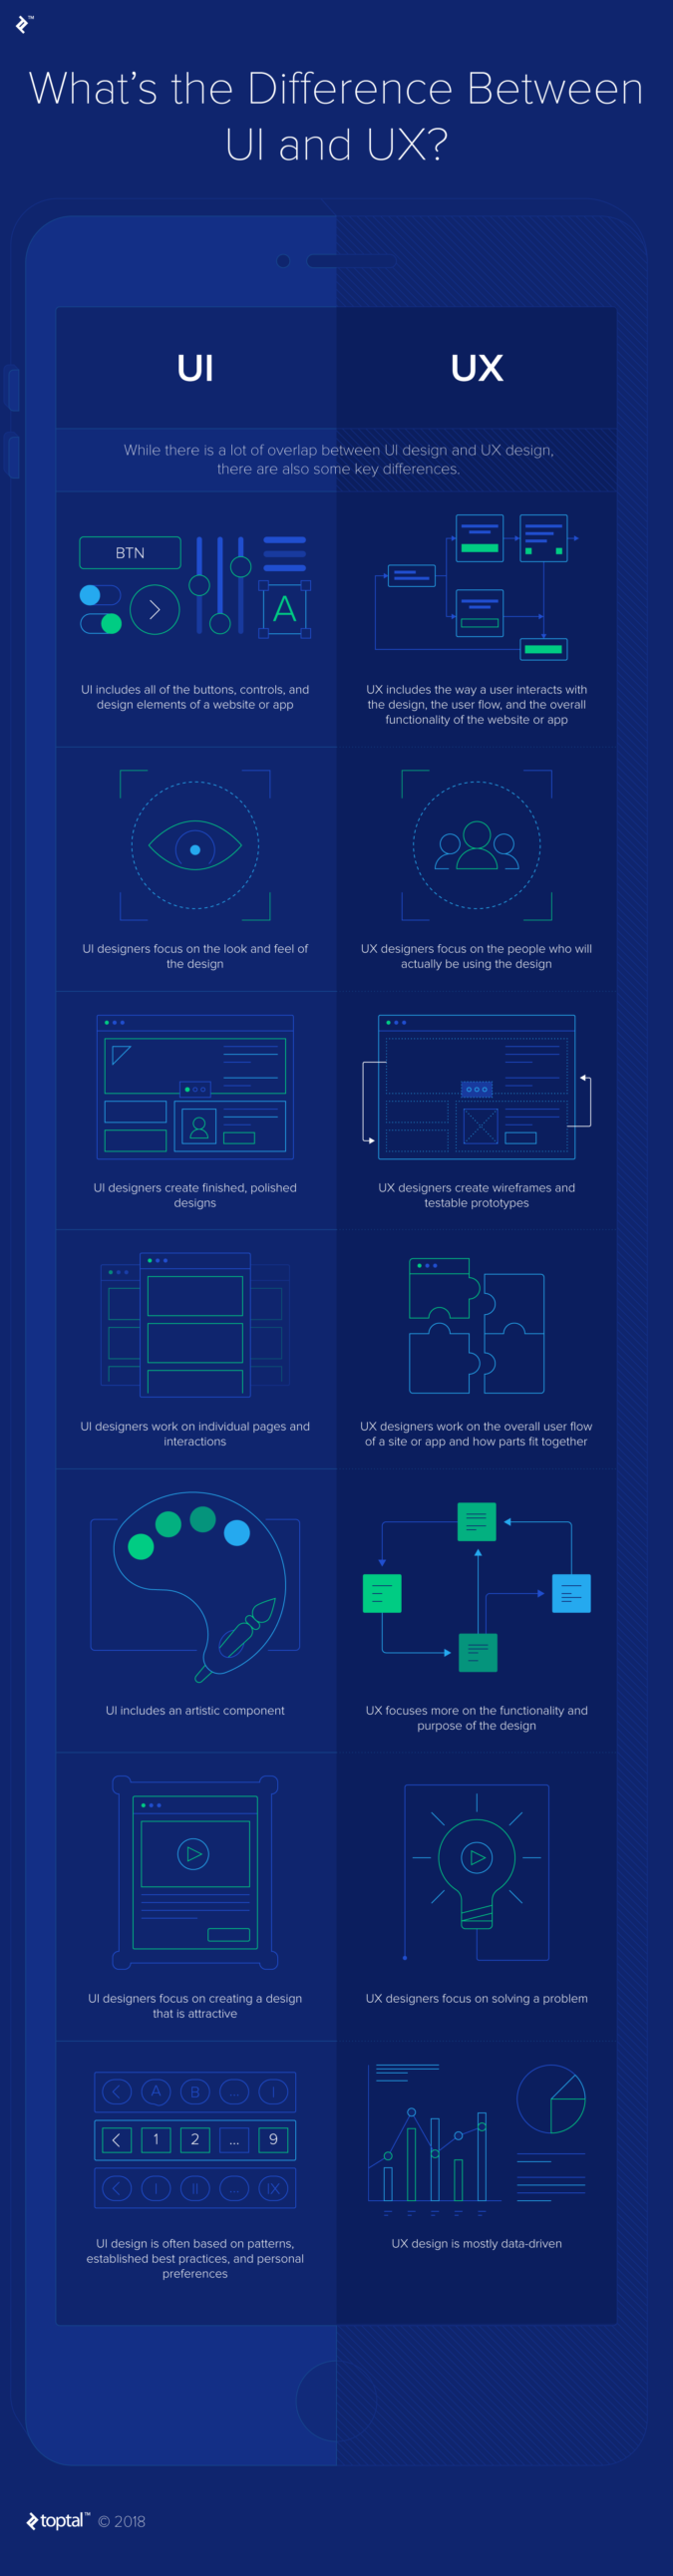 The difference between UX and UI design - Infographic by Toptal